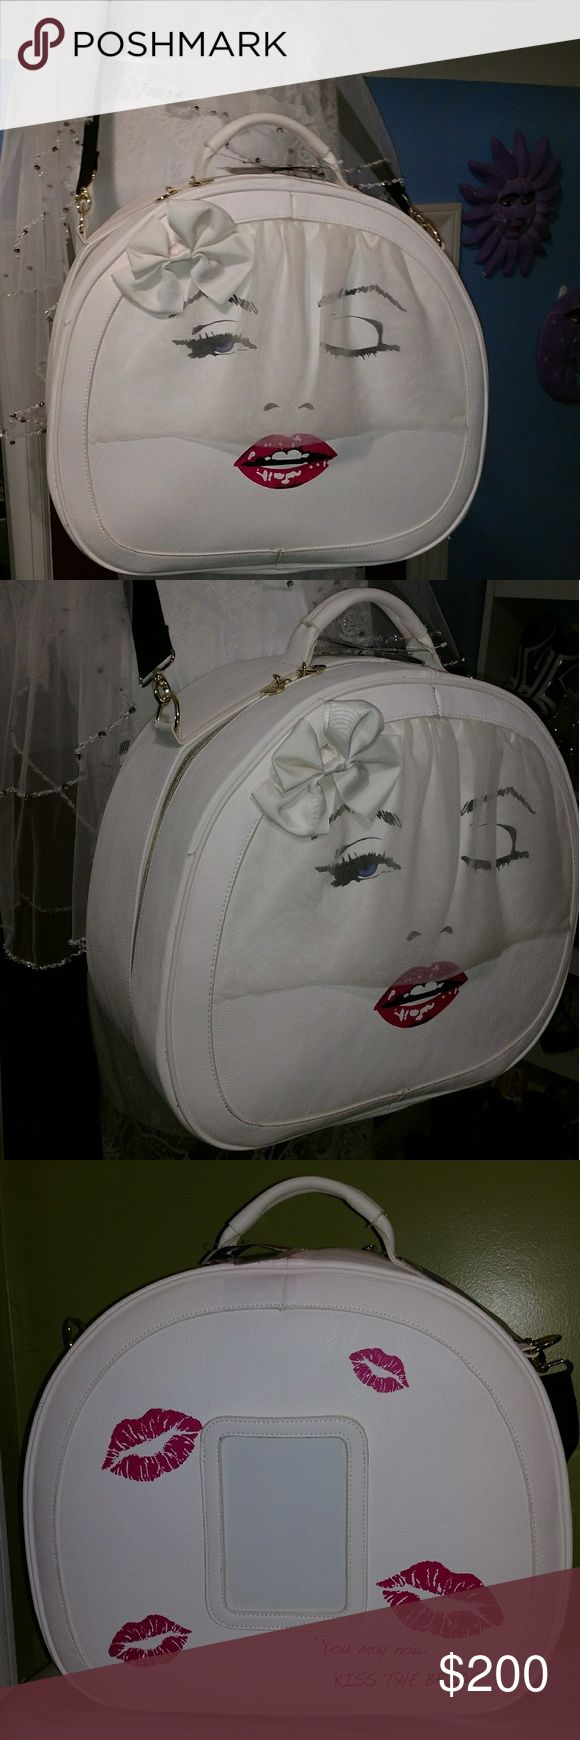 "Betsey Johnson Train Case Marilyn Monroe Kiss The Bride Weekender Luggage Color: Bone (off white) Height: 15"" Width: 7"" Length: 17"" Strap drop: handles - 2"" & crossbody strap adjusts to 22"" Betsey Johnson Bags Travel Bags"